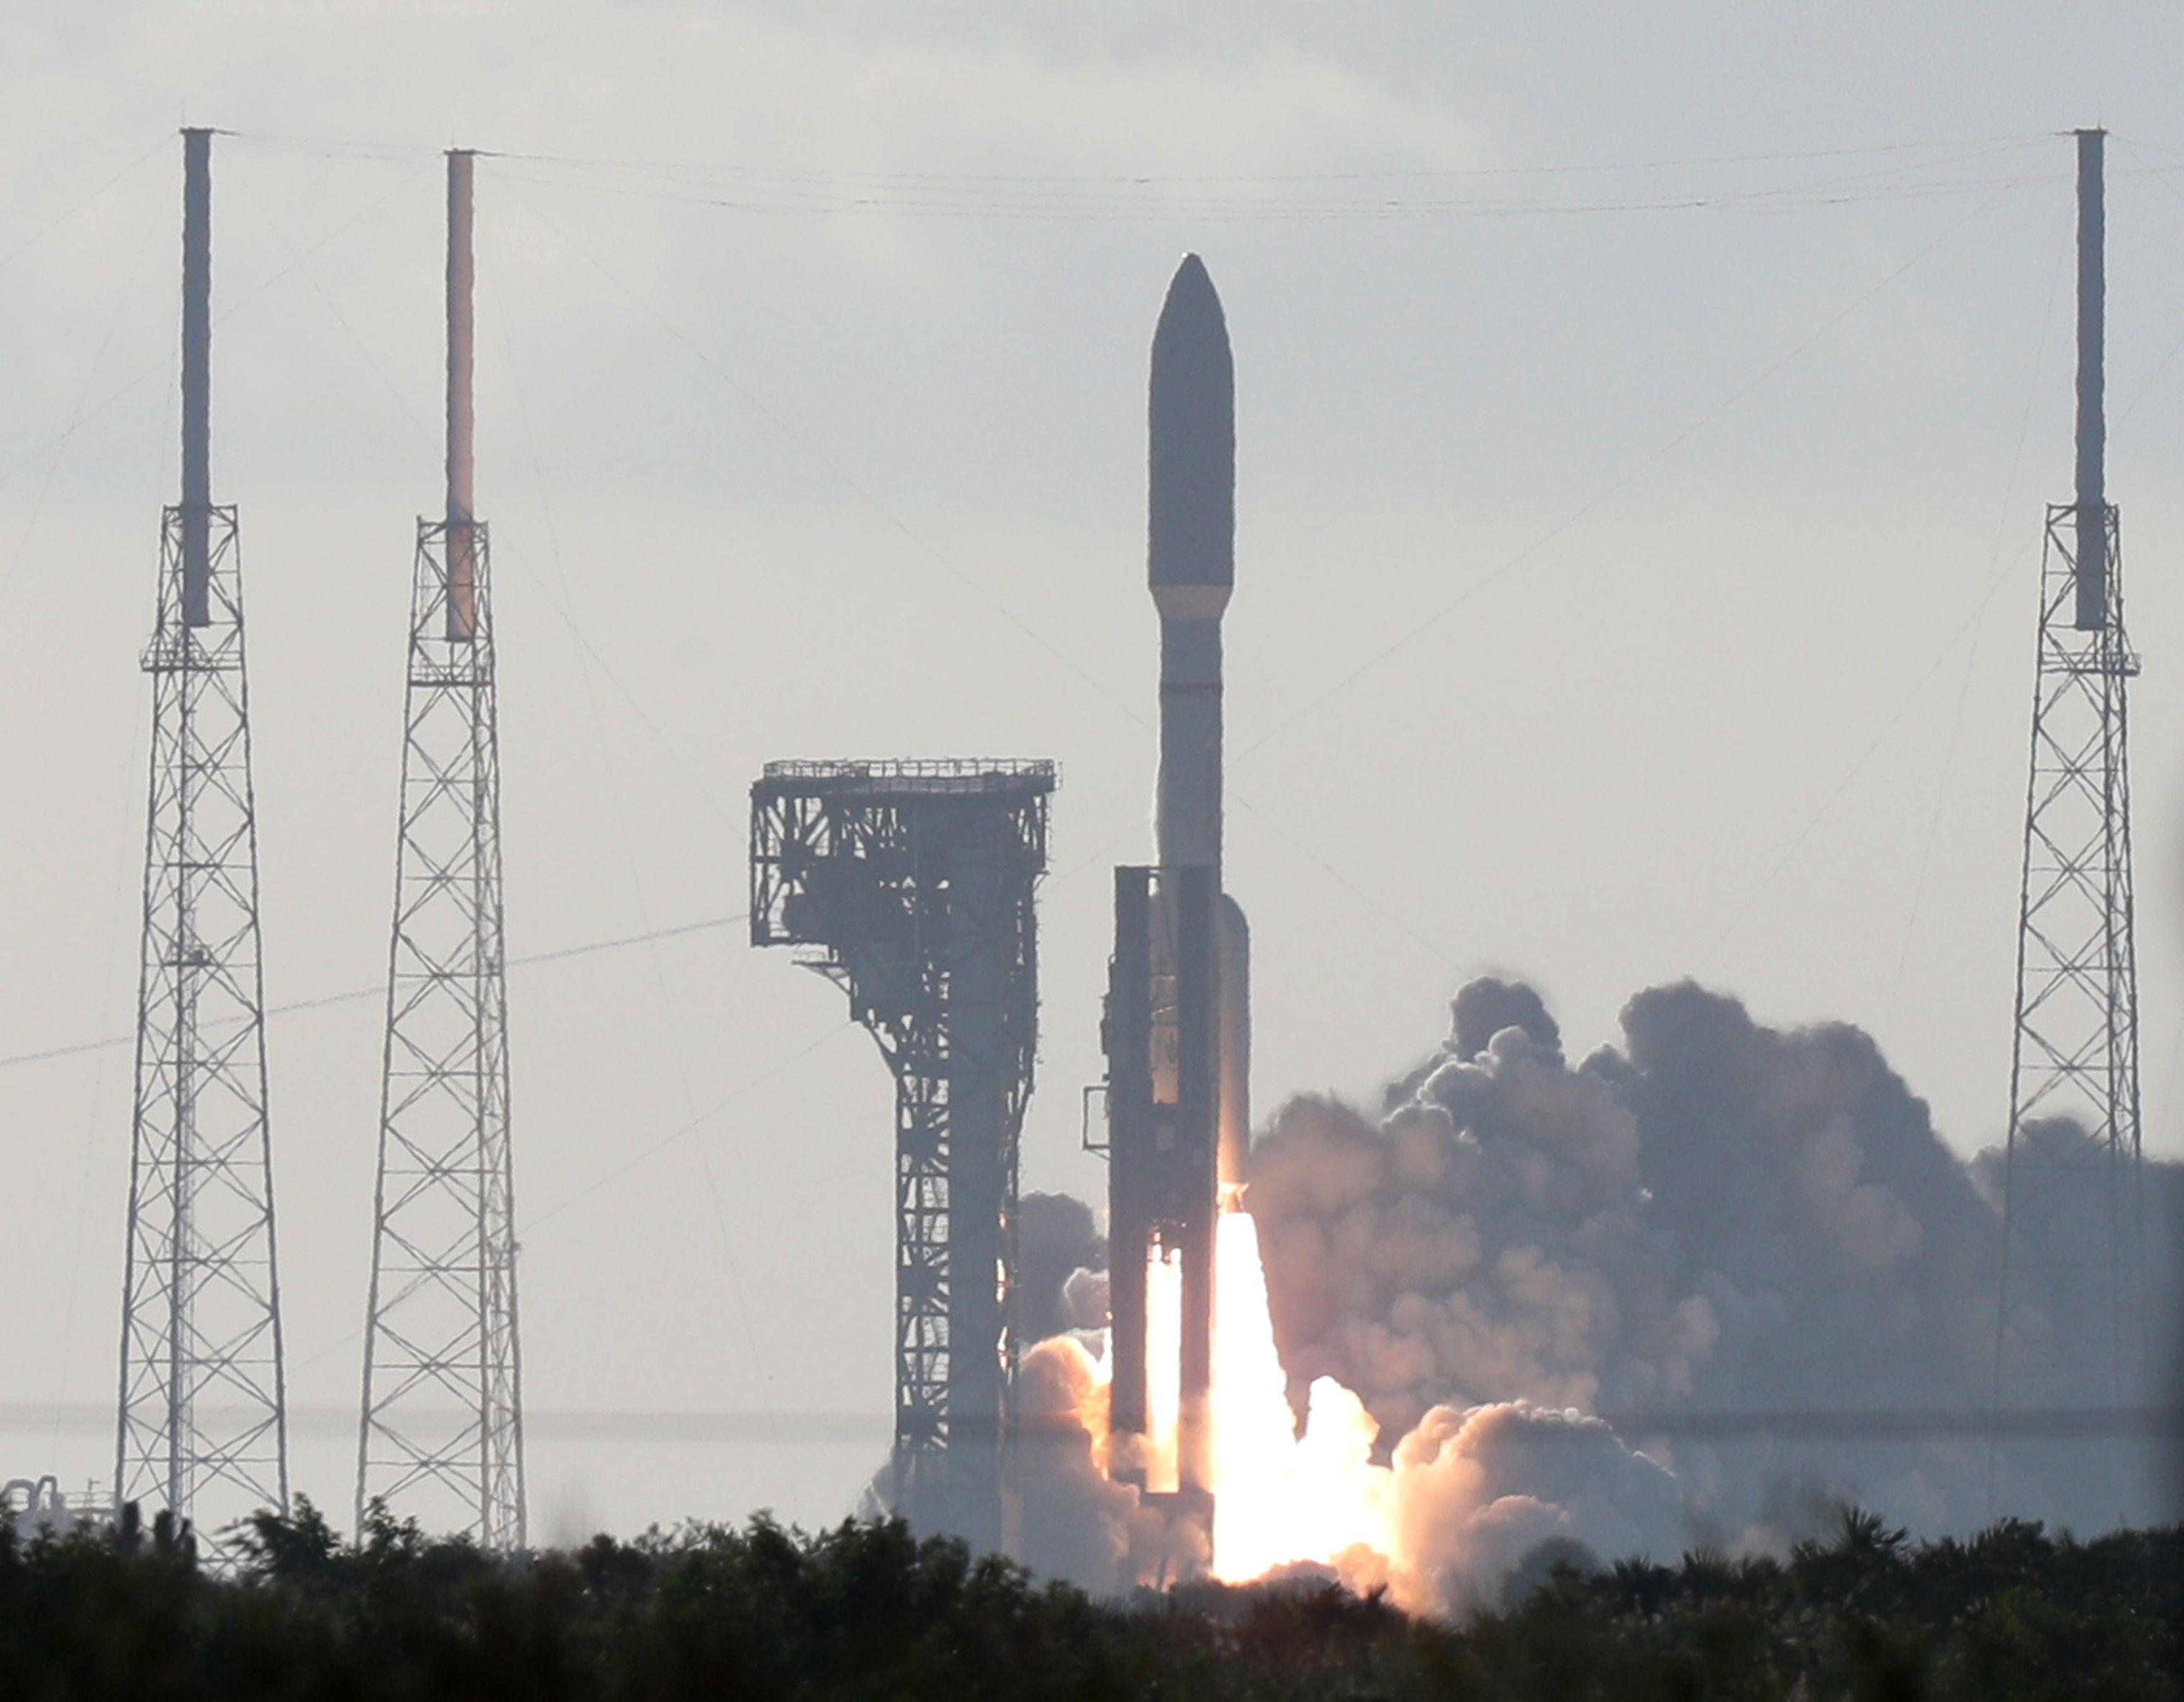 <p>The long-awaited Mars 2020 mission launched this morning from Cape Canaveral Air Force Station in Florida. It marks the beginning of a more than ten-year mission to bring back samples of Mars rock to Earth. Both NASA and the European Space Agency are working diligently to orchestrate the daring and complex mission. </p><p>Here's how the mission will (hopefully) unfold. </p>